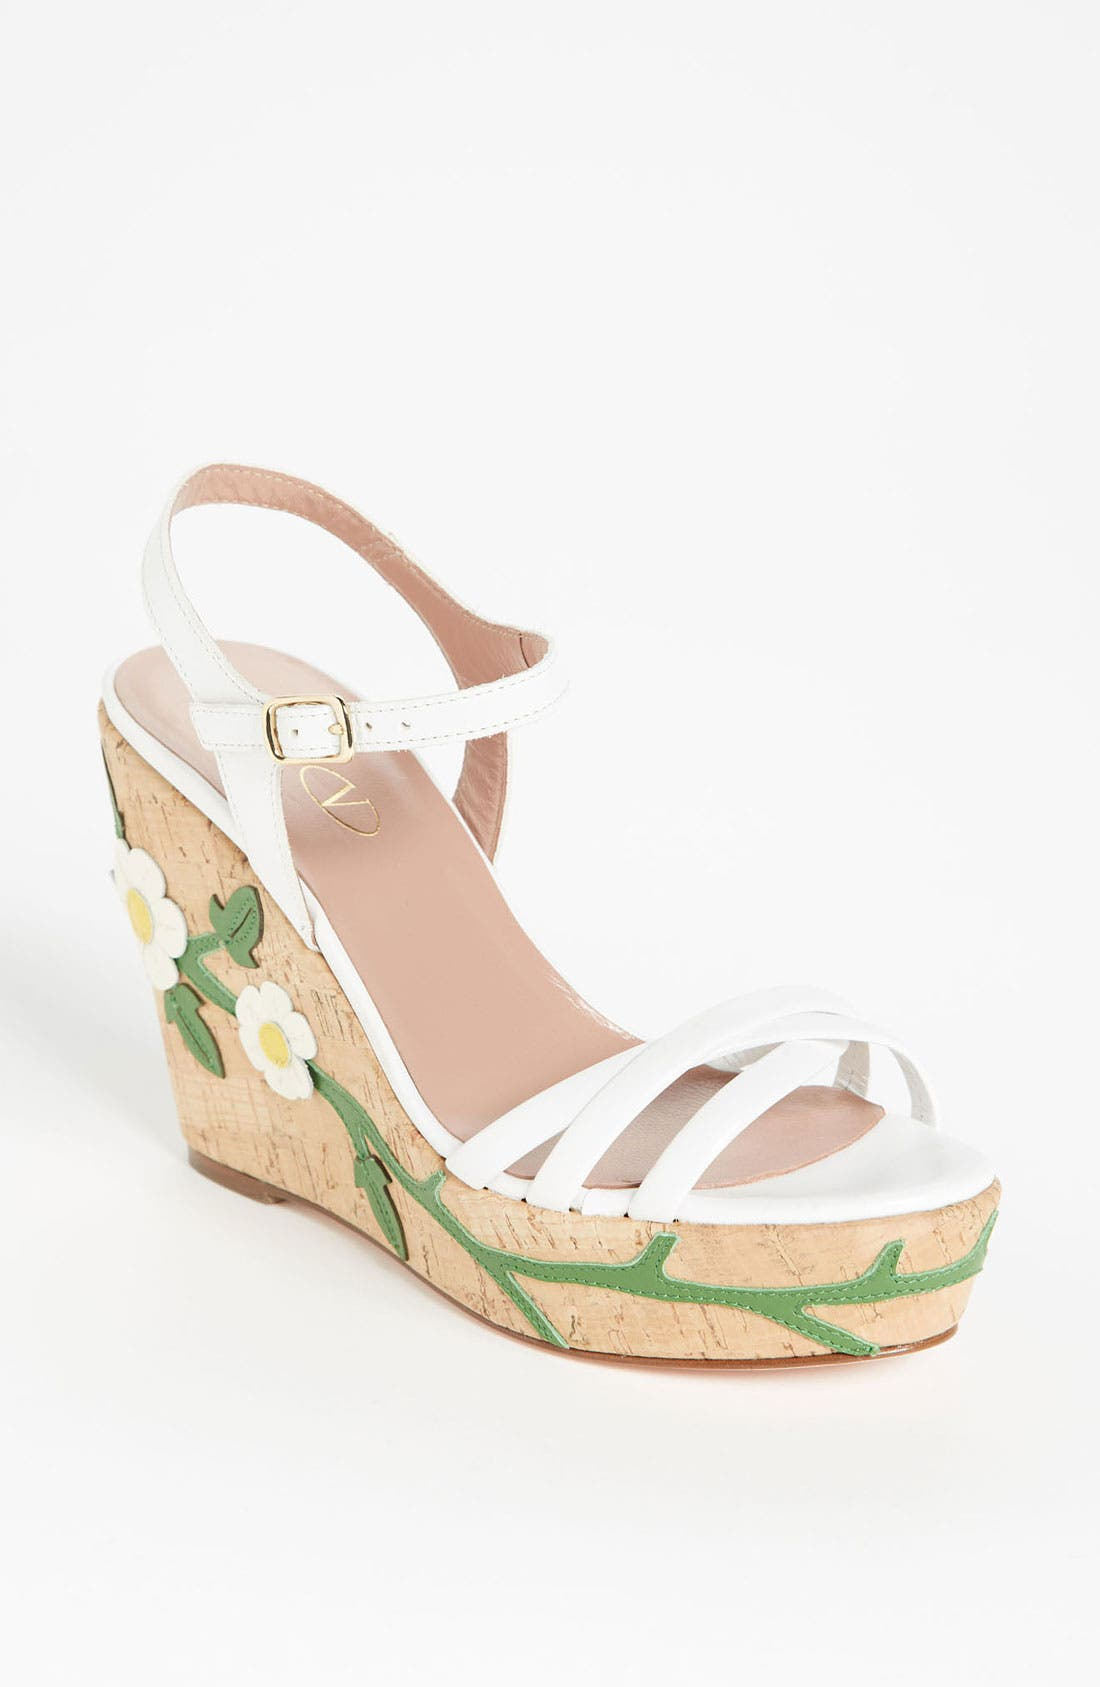 Alternate Image 1 Selected - RED Valentino 'Daisy' Wedge Sandal